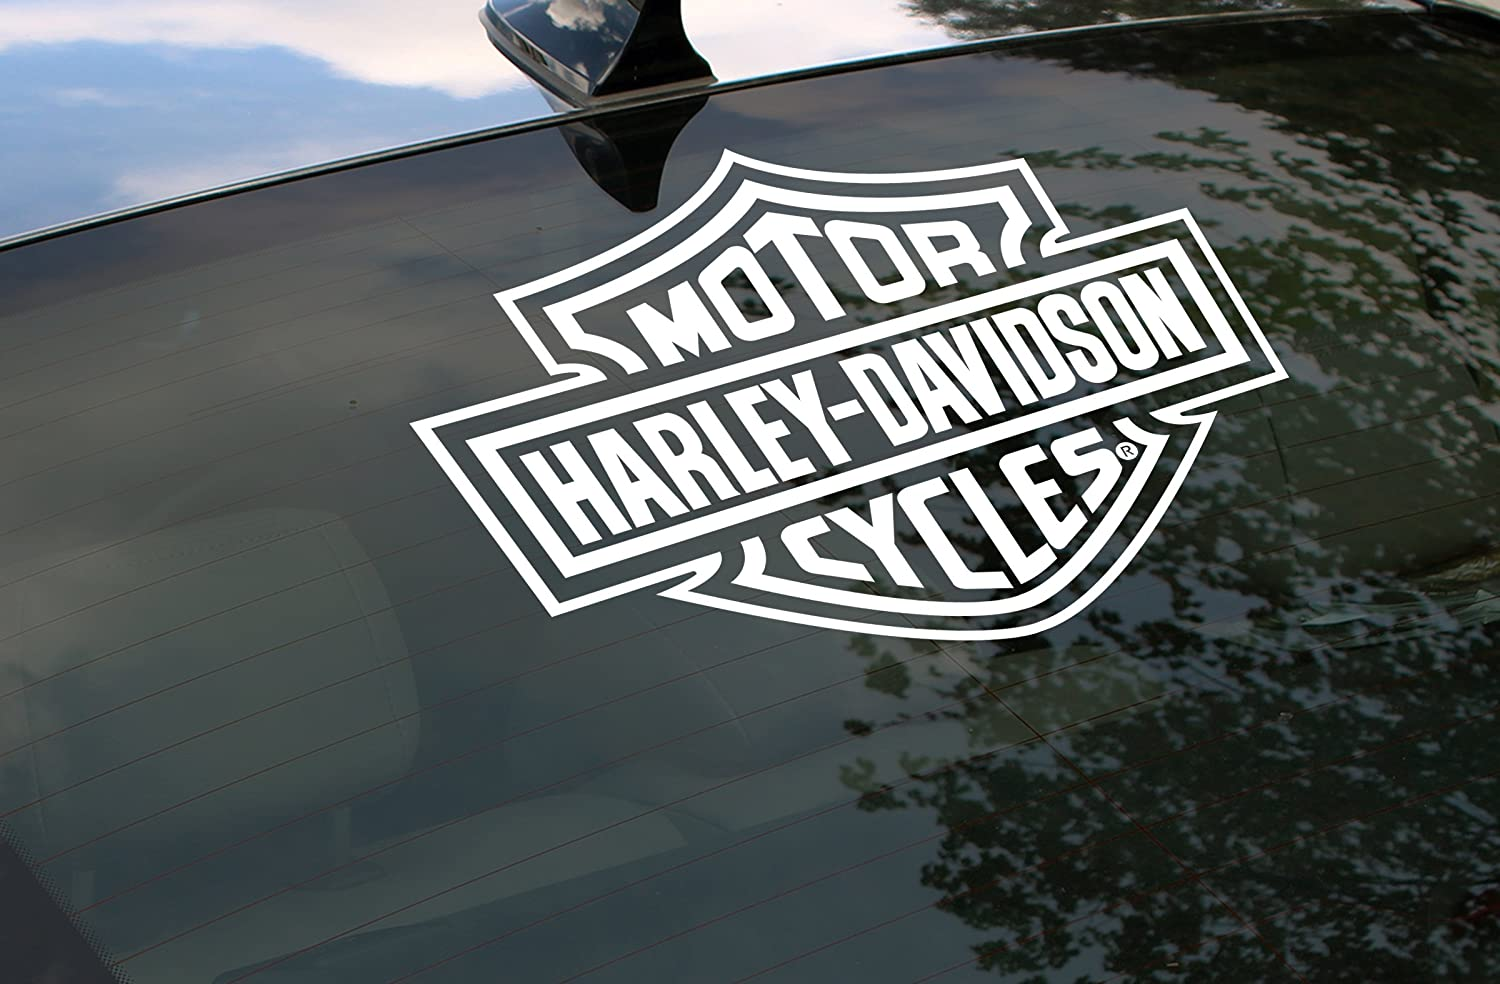 Harley davidson logo cutz rear window decal decals bumper stickers amazon canada